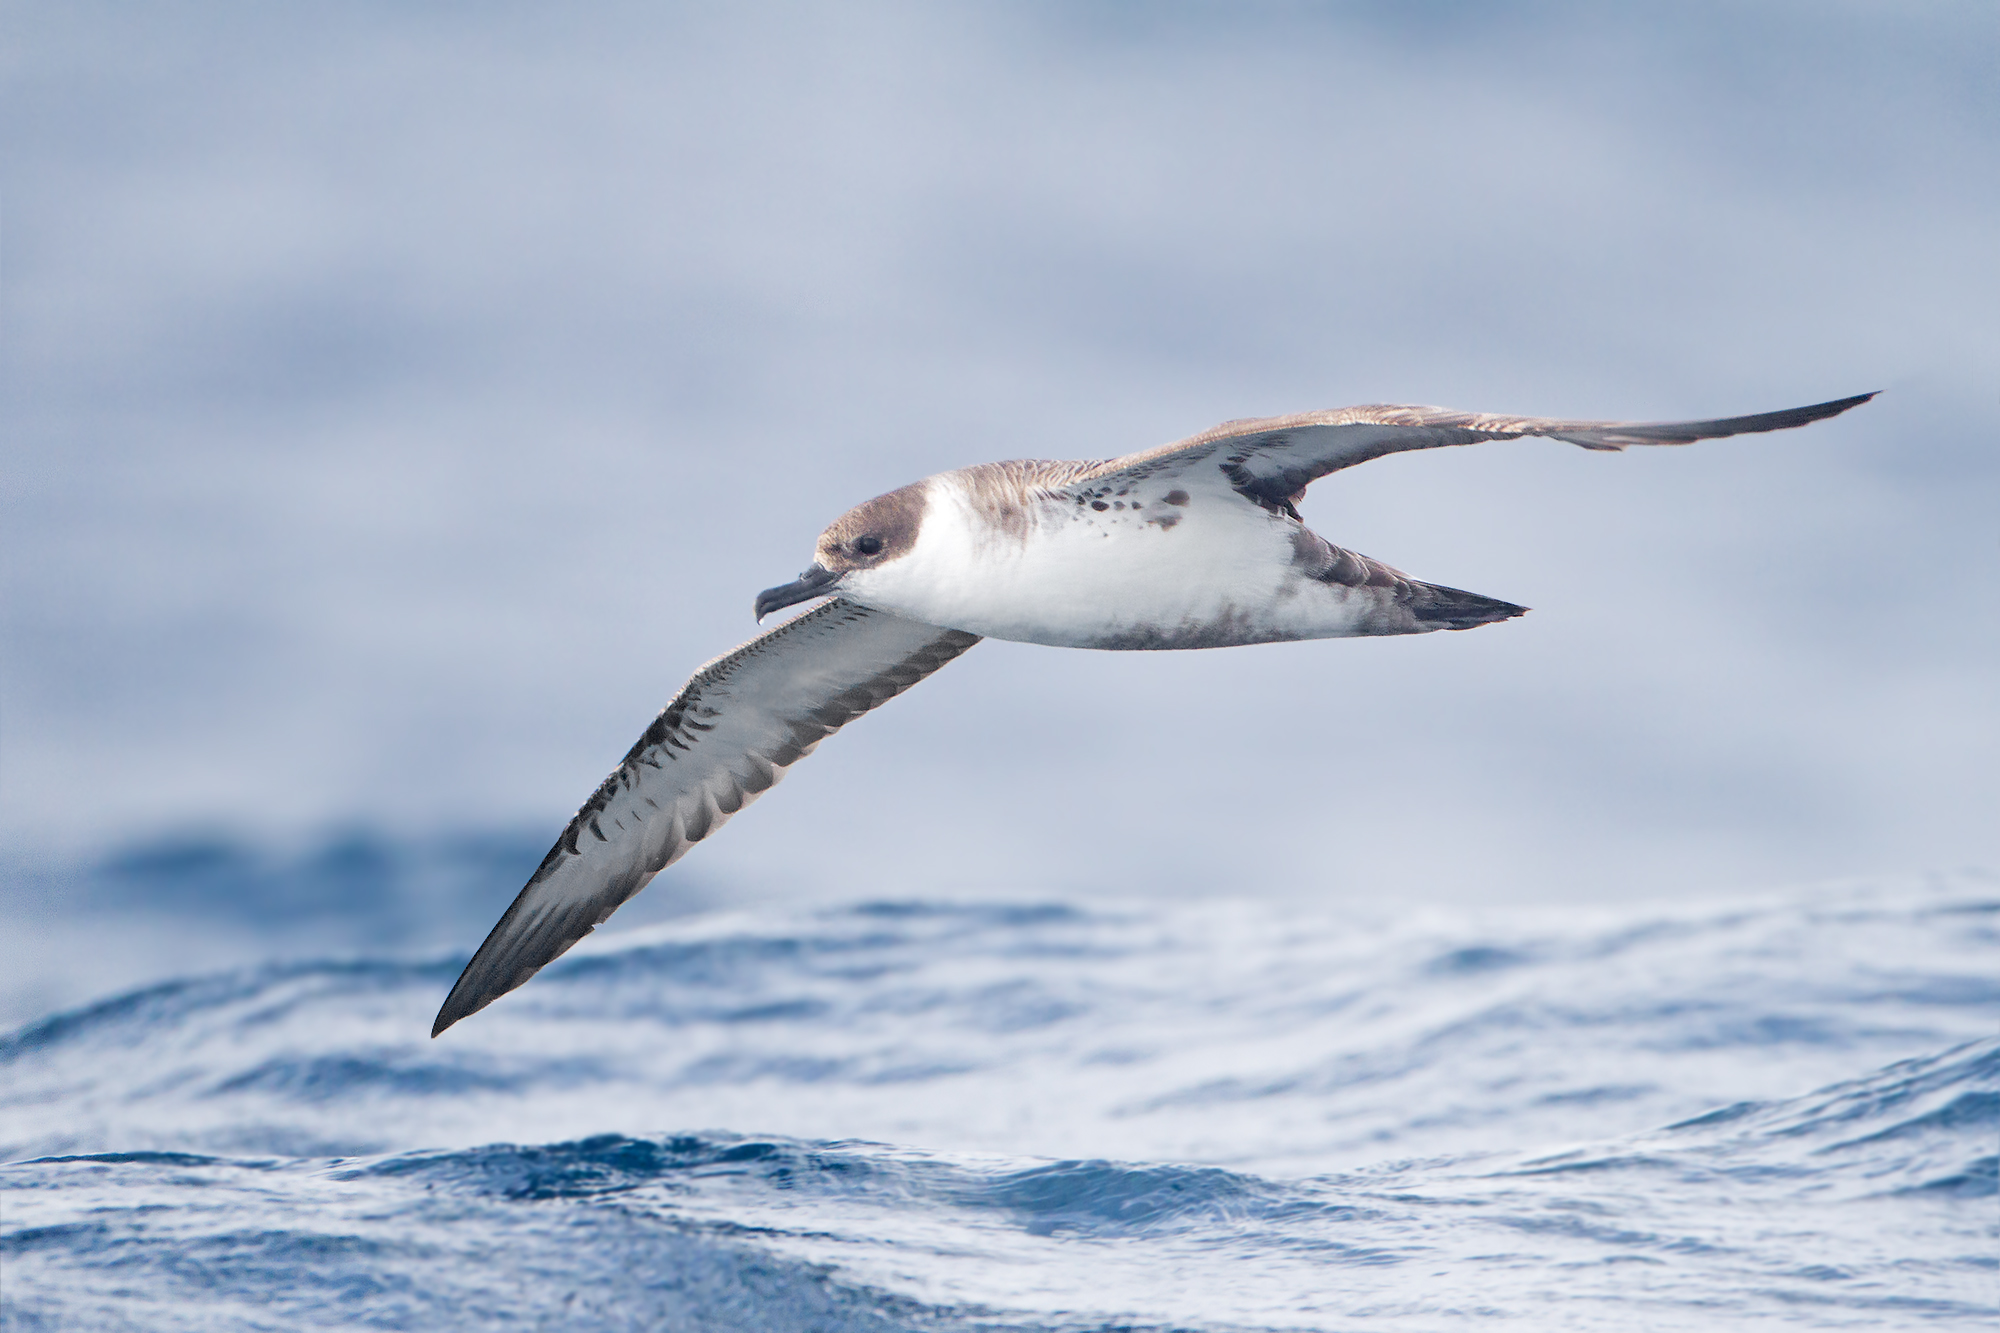 More than just a game of tag: learning about seabird habitat use through tagging studies